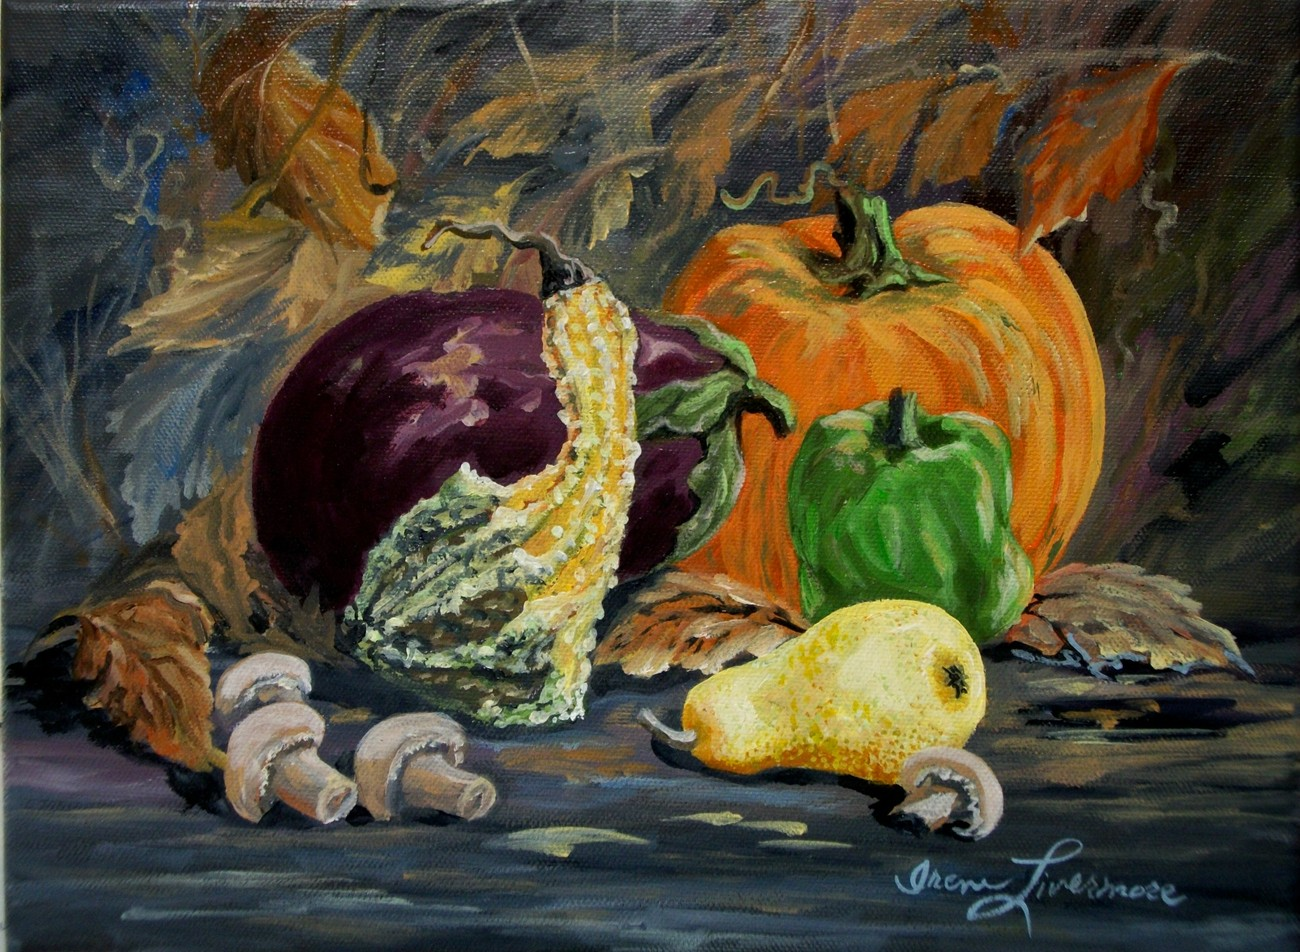 Eggplant Pumpkin Gourd Pear Vegetable Still Life Realistic Original Oil Painting